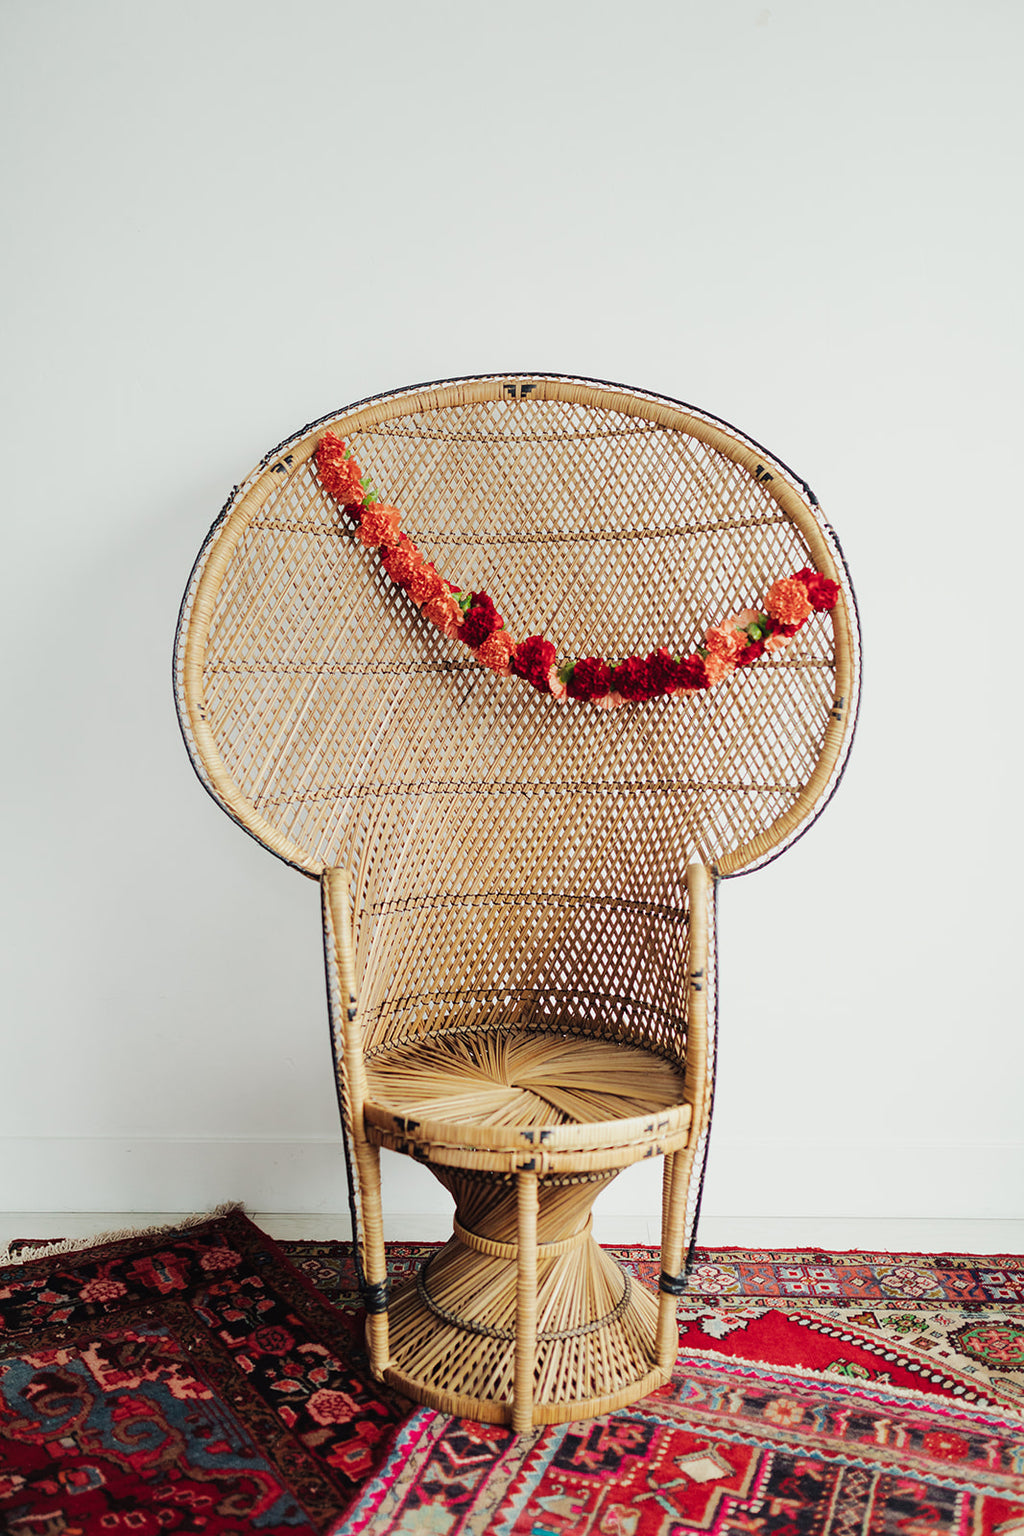 Peacock chair with floral decor